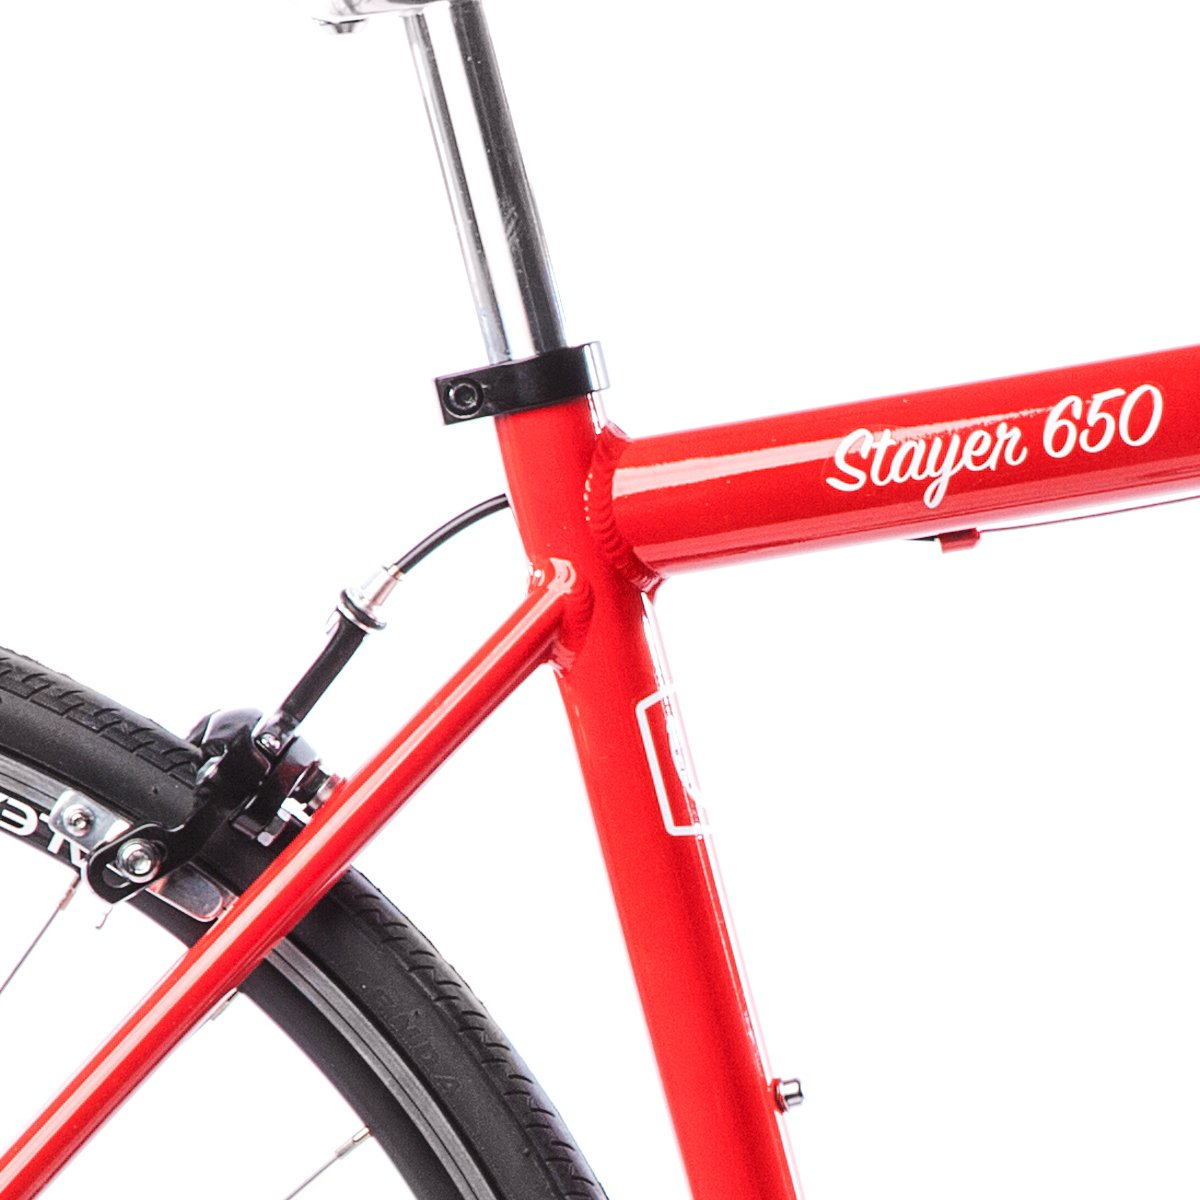 Swobo Farrier Stayer 650c Wheeled Road Bike 17 Inch Element Mtb Fullsus Pride 20 Greey Red One Size Sports Outdoors